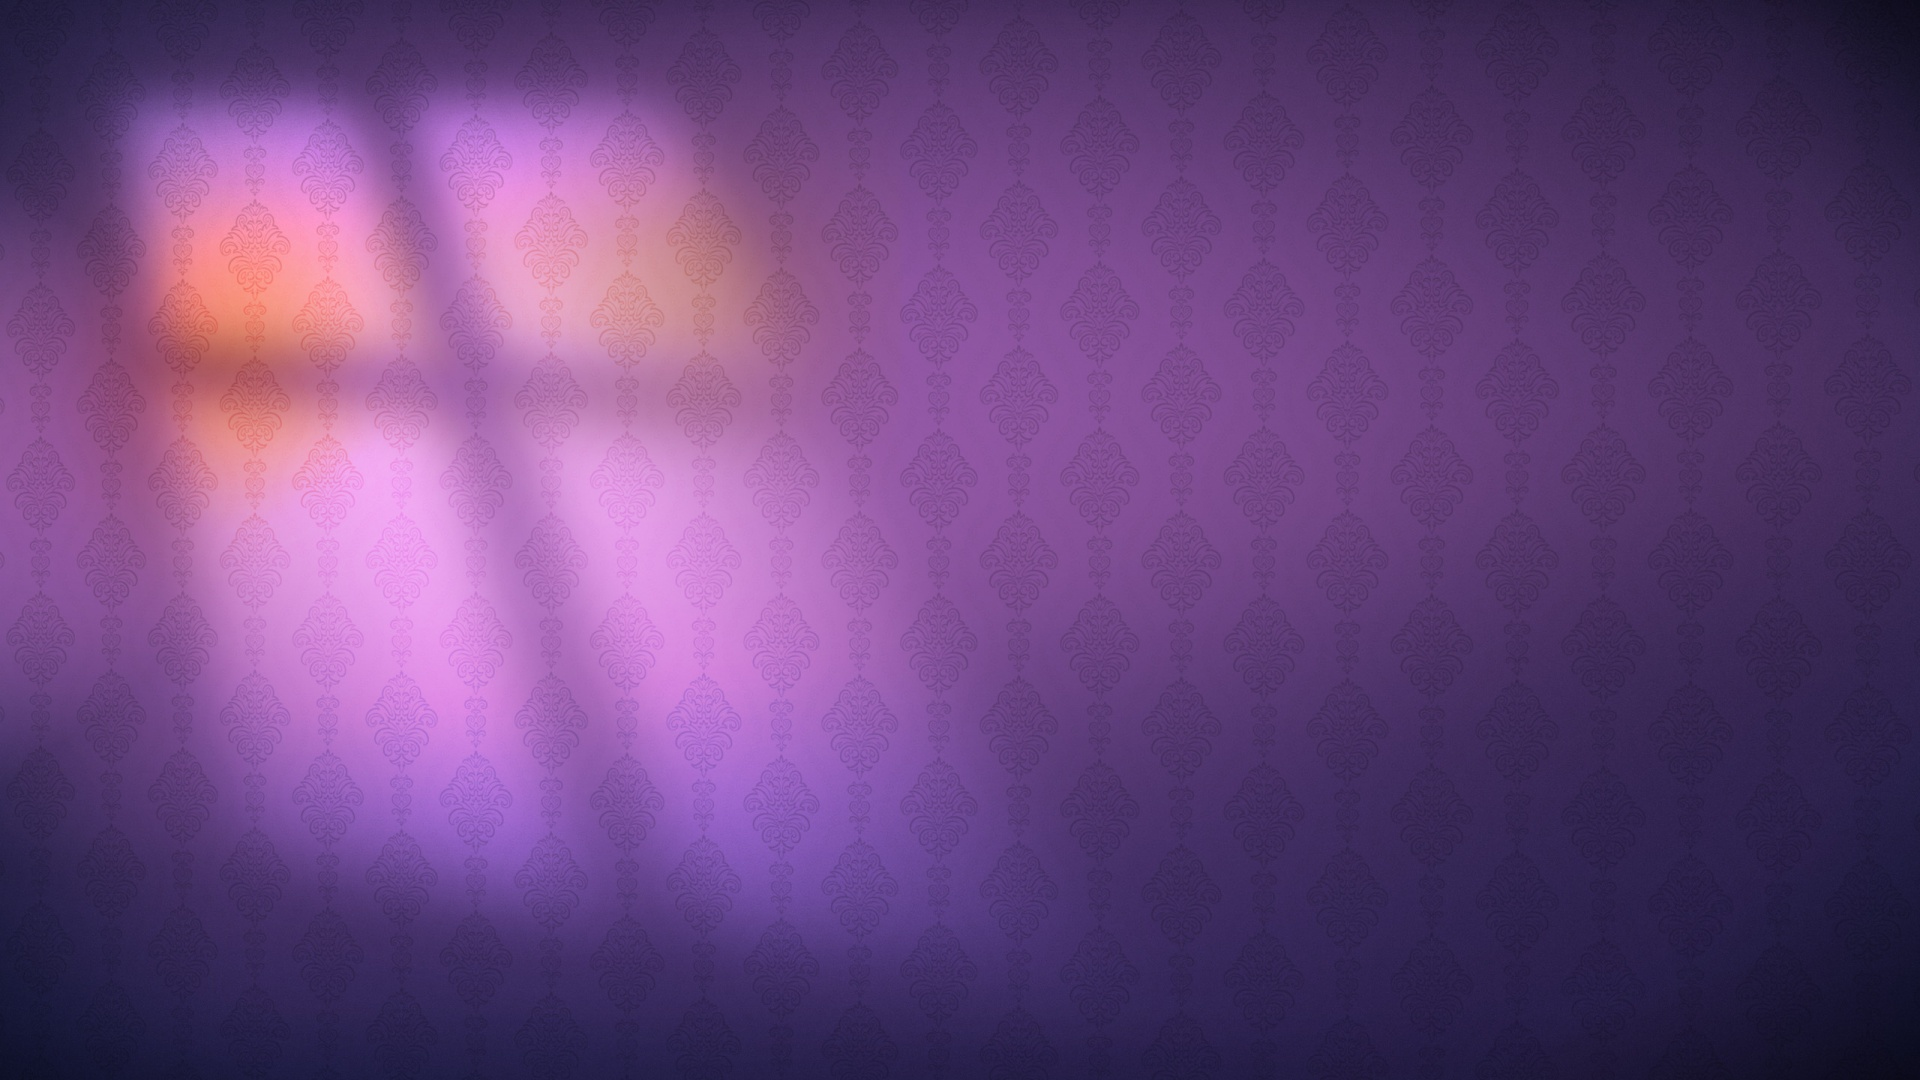 abstract wallpapers hd mood purple